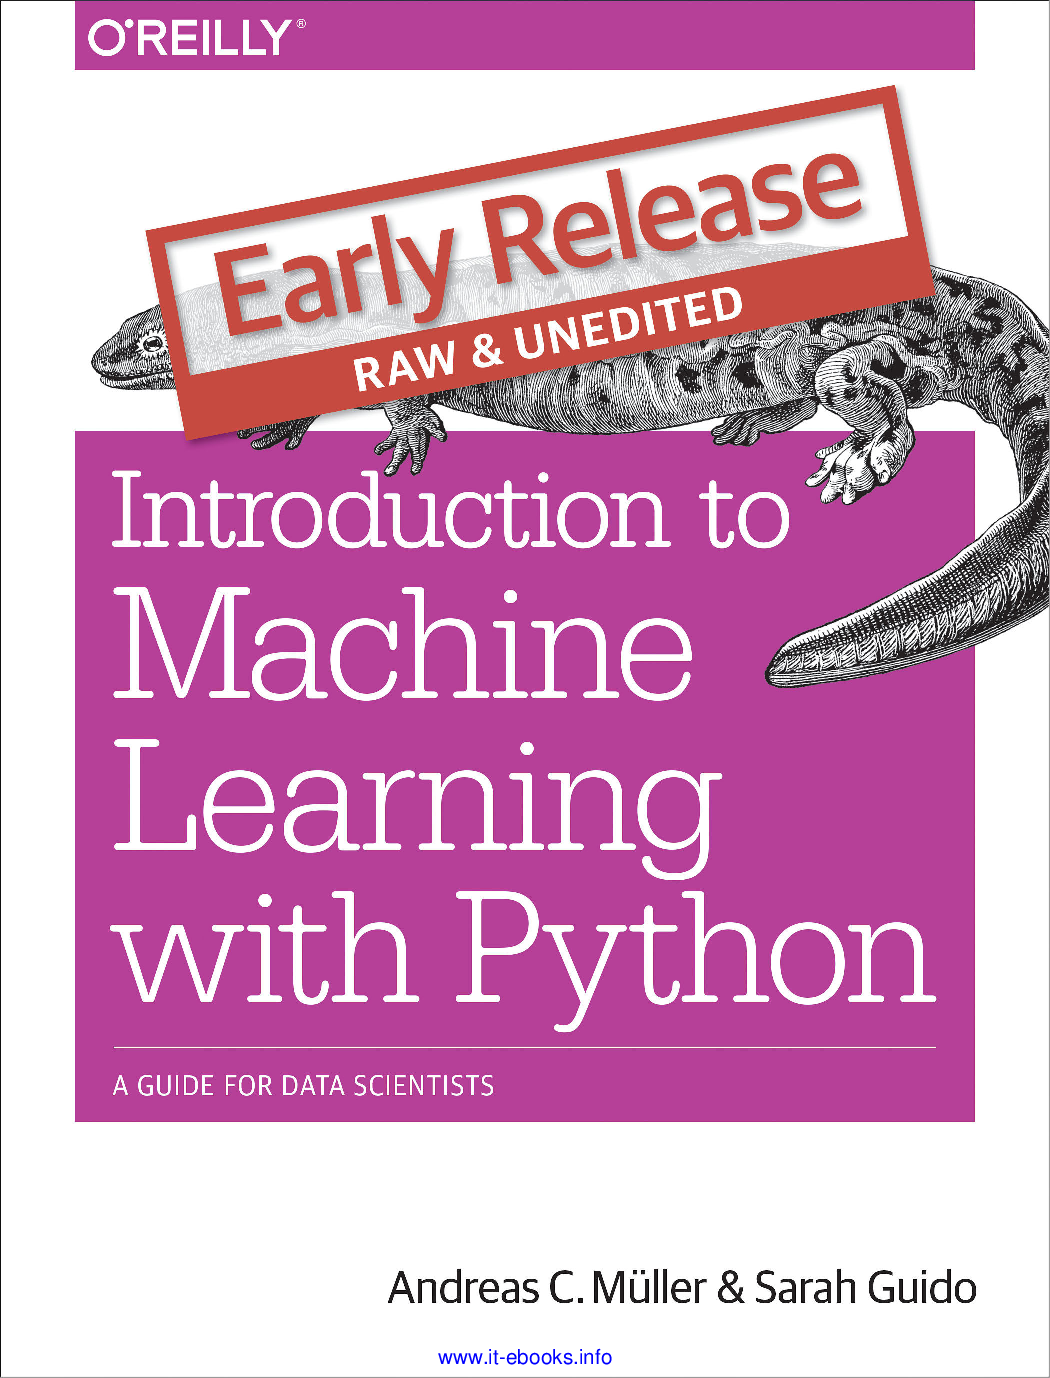 Machine Learning With Python Introduction To A Guide For Data ...